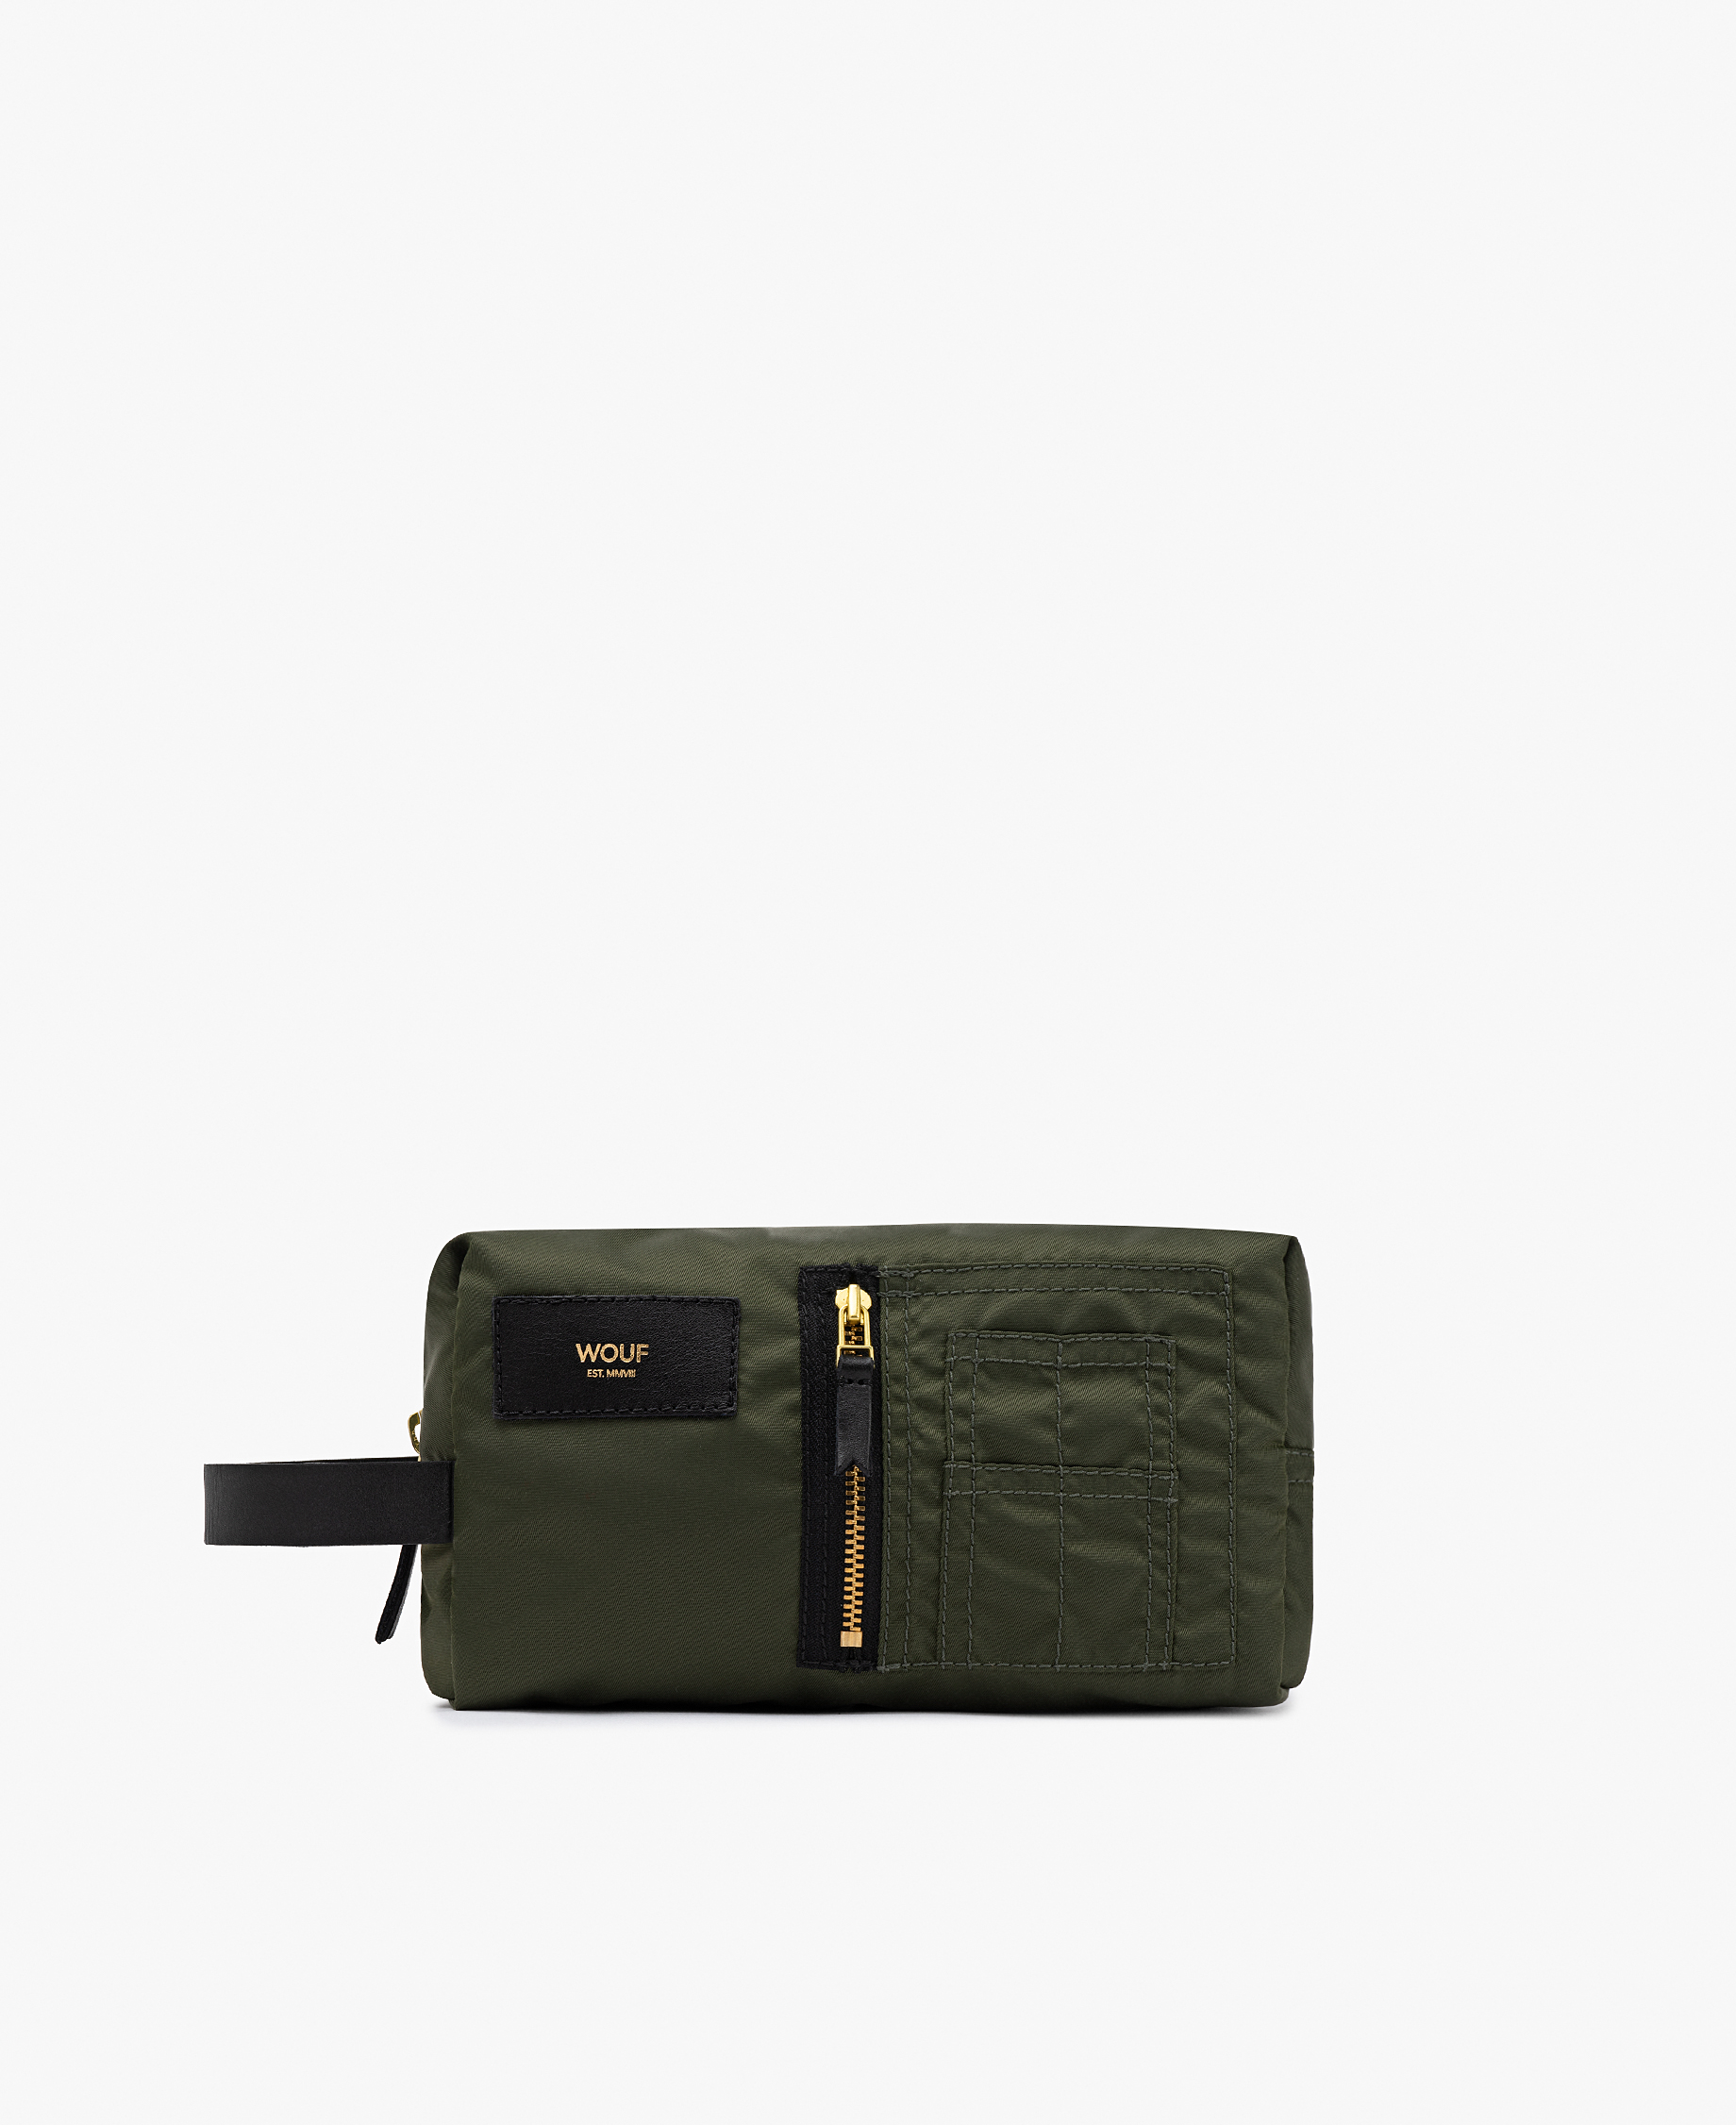 man green toiletry bag